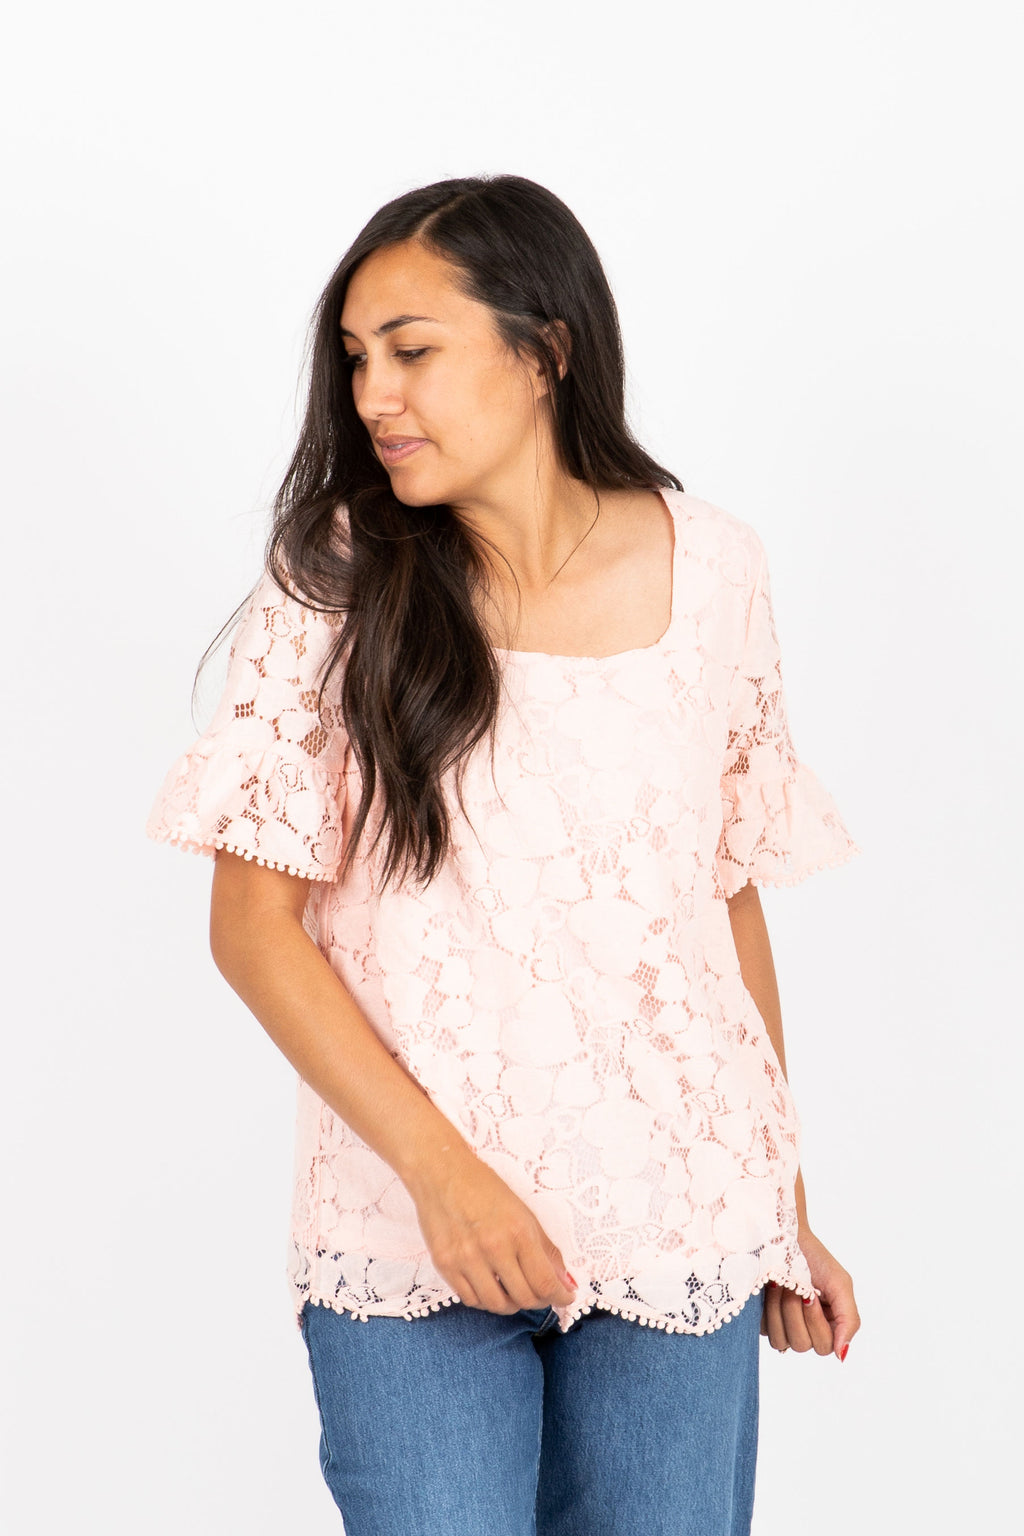 The Bistro Lace Blouse in Blush